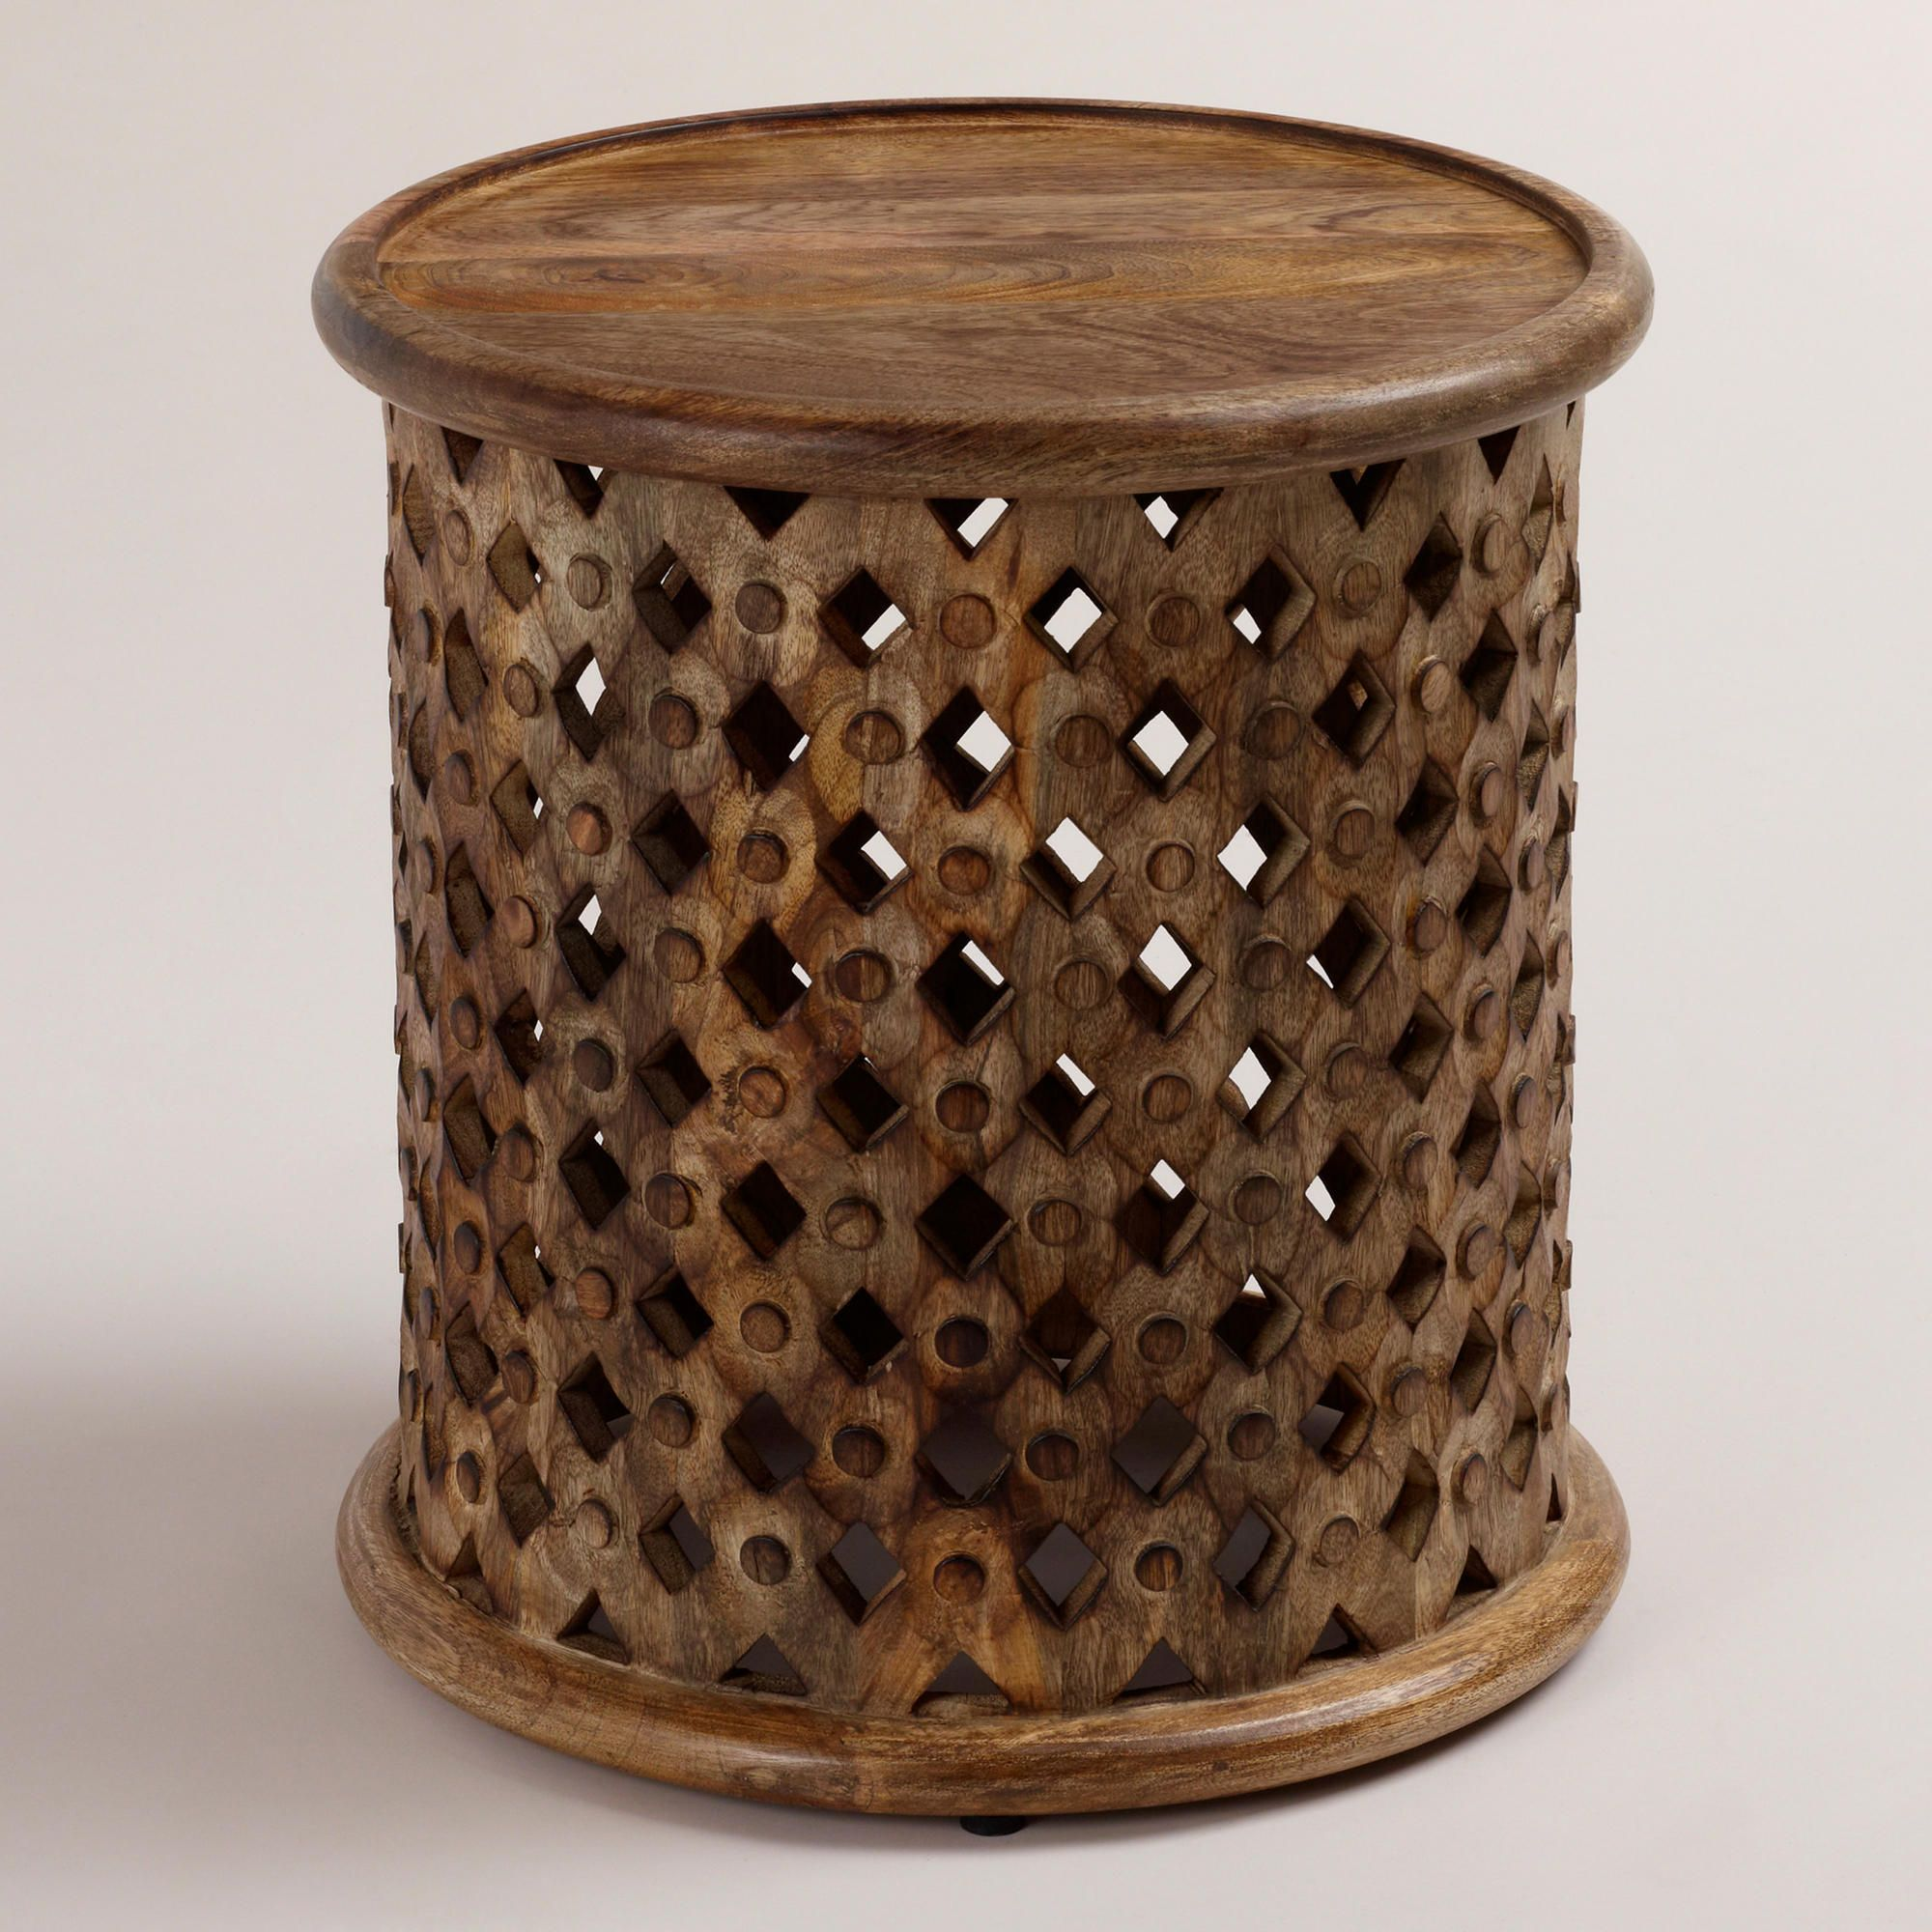 tribal carved wood accent table world market this would cylinder drum look great bedroom next the chair usb lamp bedside lights green lamps colorful sofa oak black marble top end